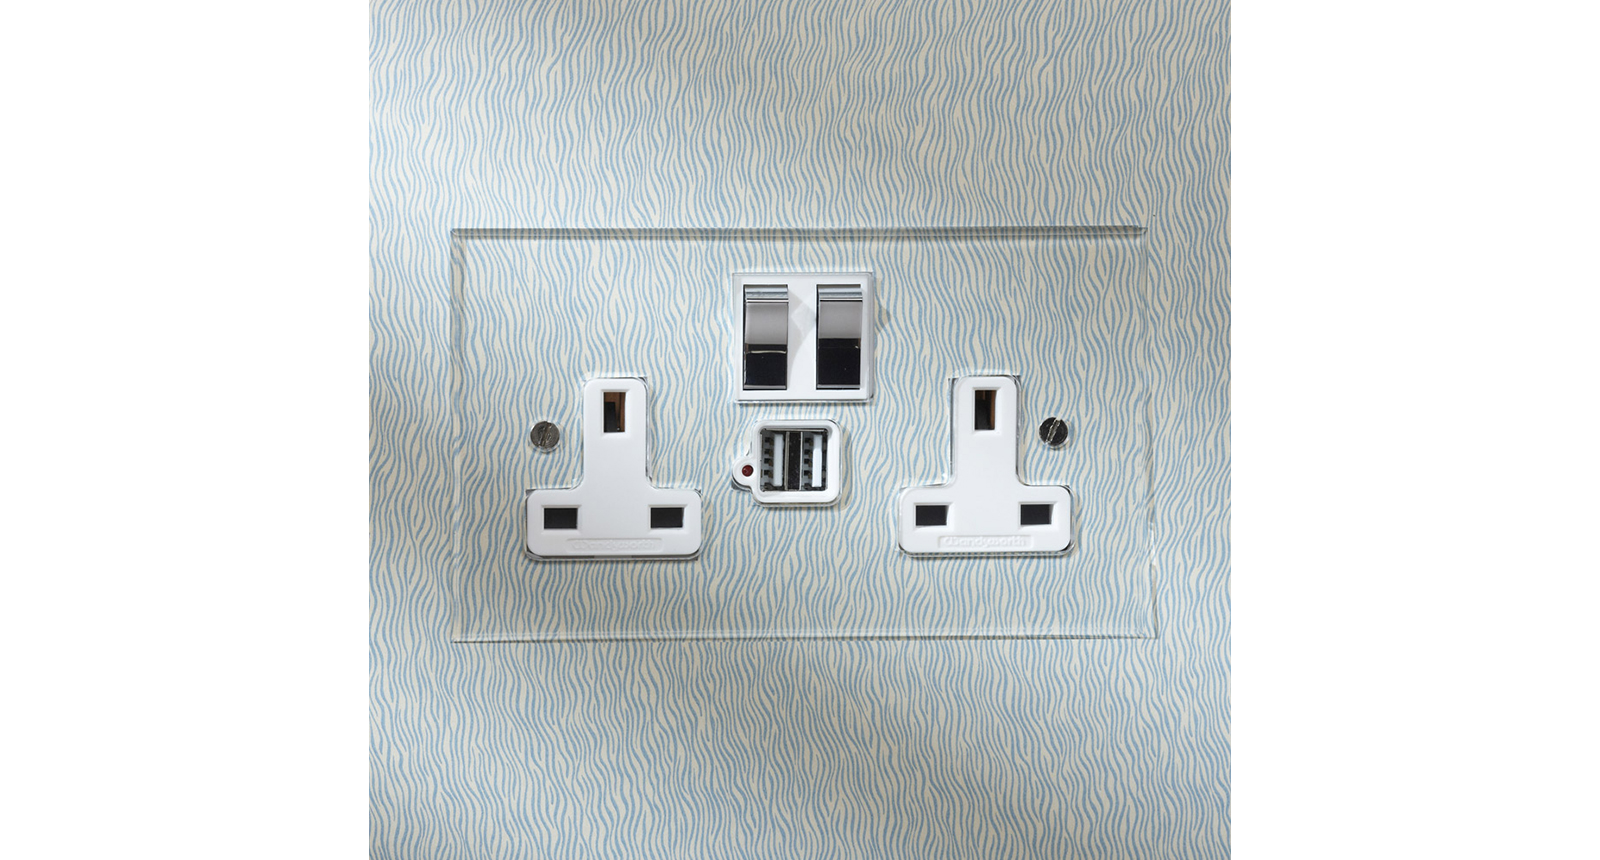 The verticals in this image of an invisible socket are not quite aligned which makes it disturbing to look at for visually acutely sensitive people. Even if it is subconscious this detail could be enough for a professional specifier to skip specifying this product.